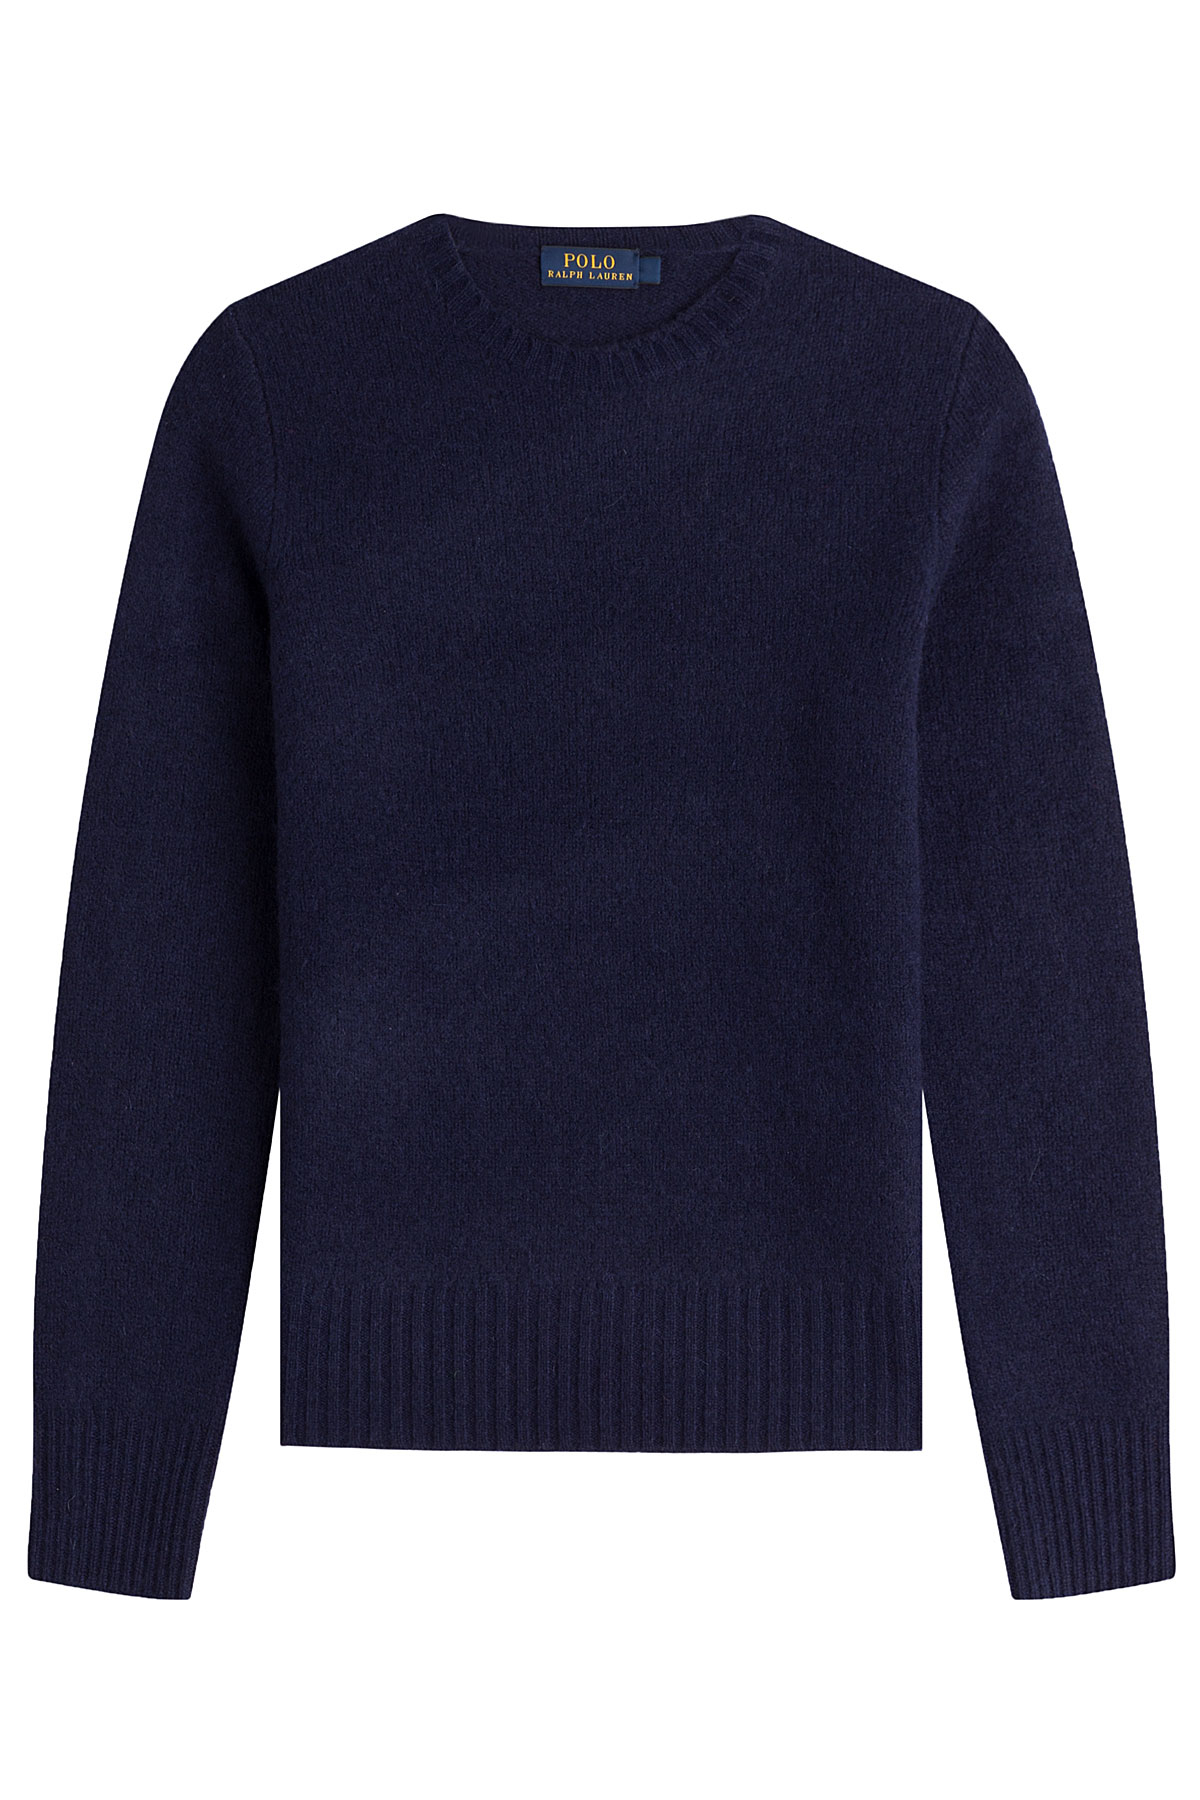 polo ralph lauren wool cashmere pullover blue in blue lyst. Black Bedroom Furniture Sets. Home Design Ideas